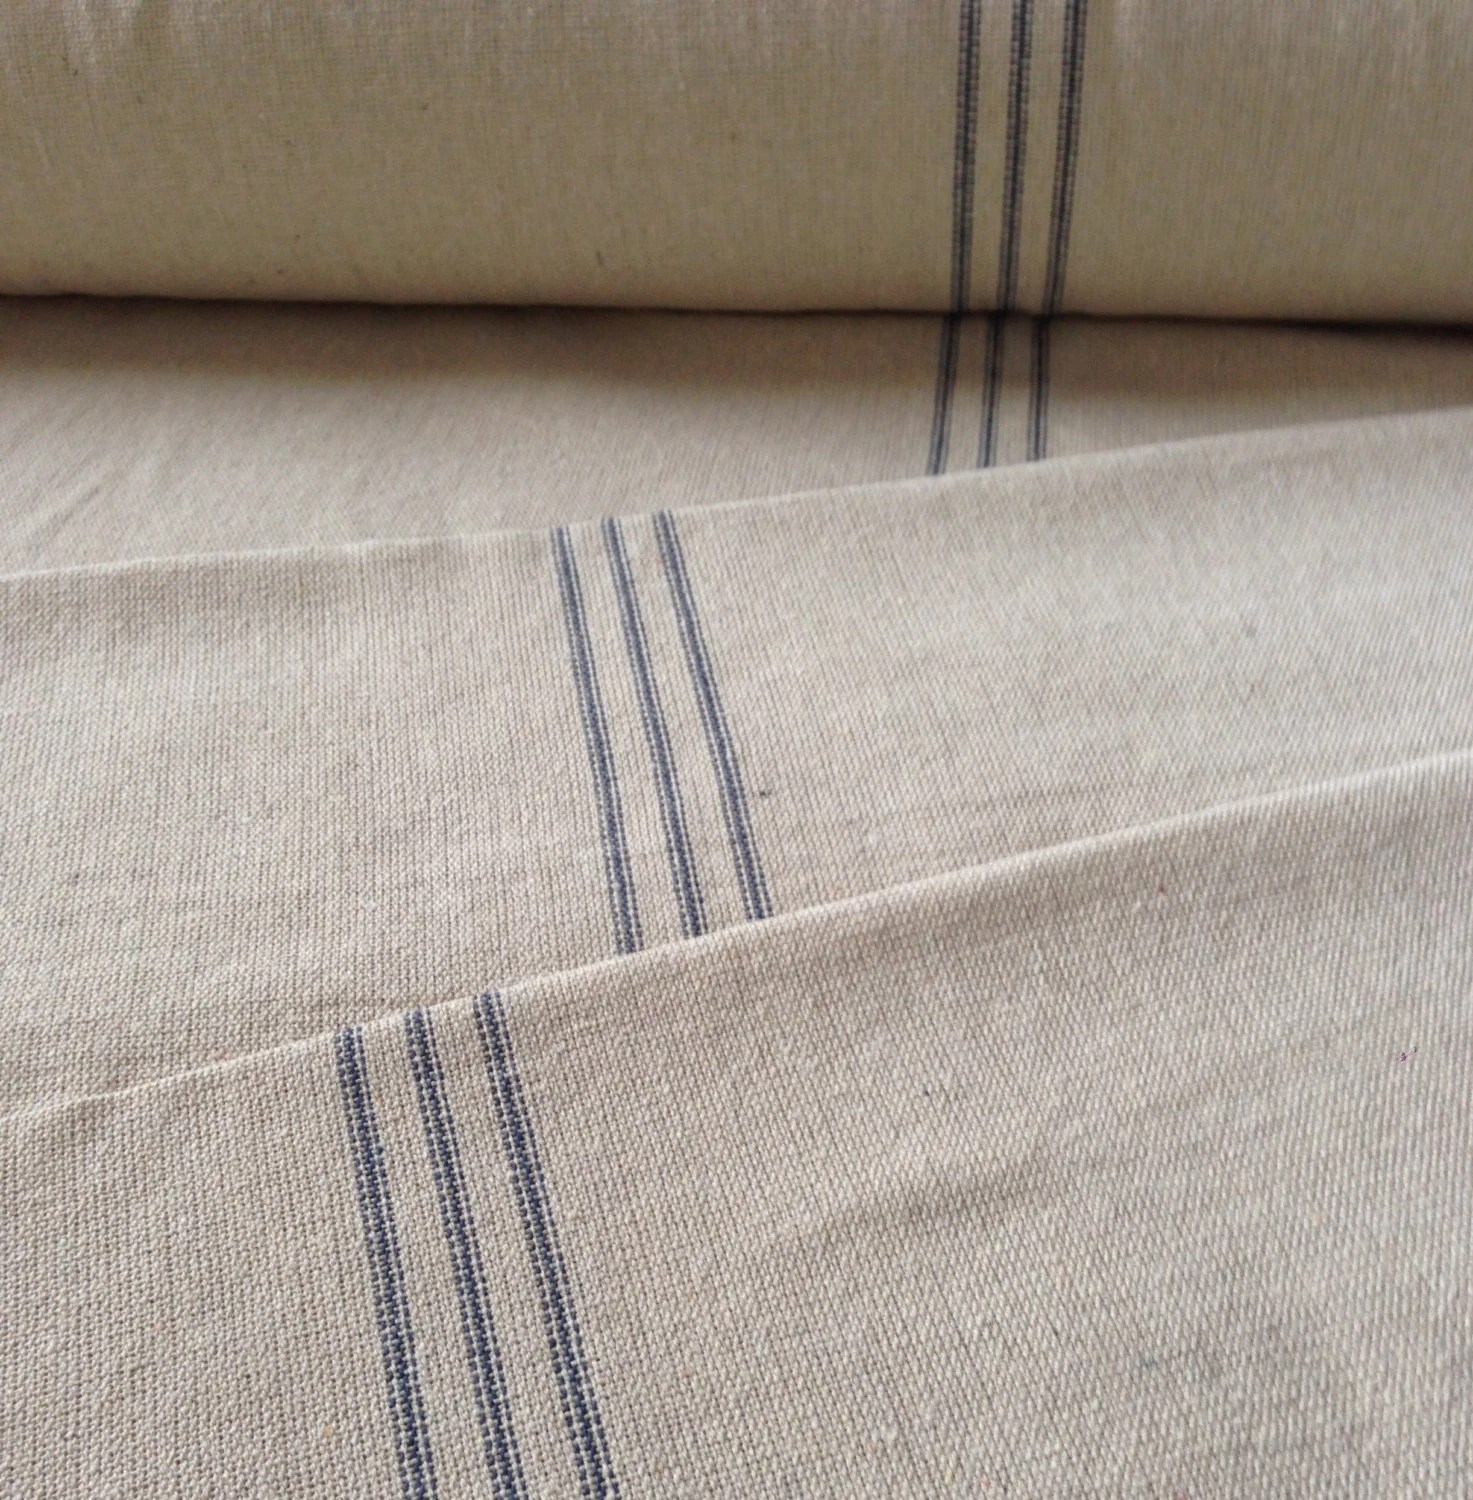 Flour Sack Fabric By The Yard Grain Sack Fabric Sold By The Yard Blue Stripe Vintage